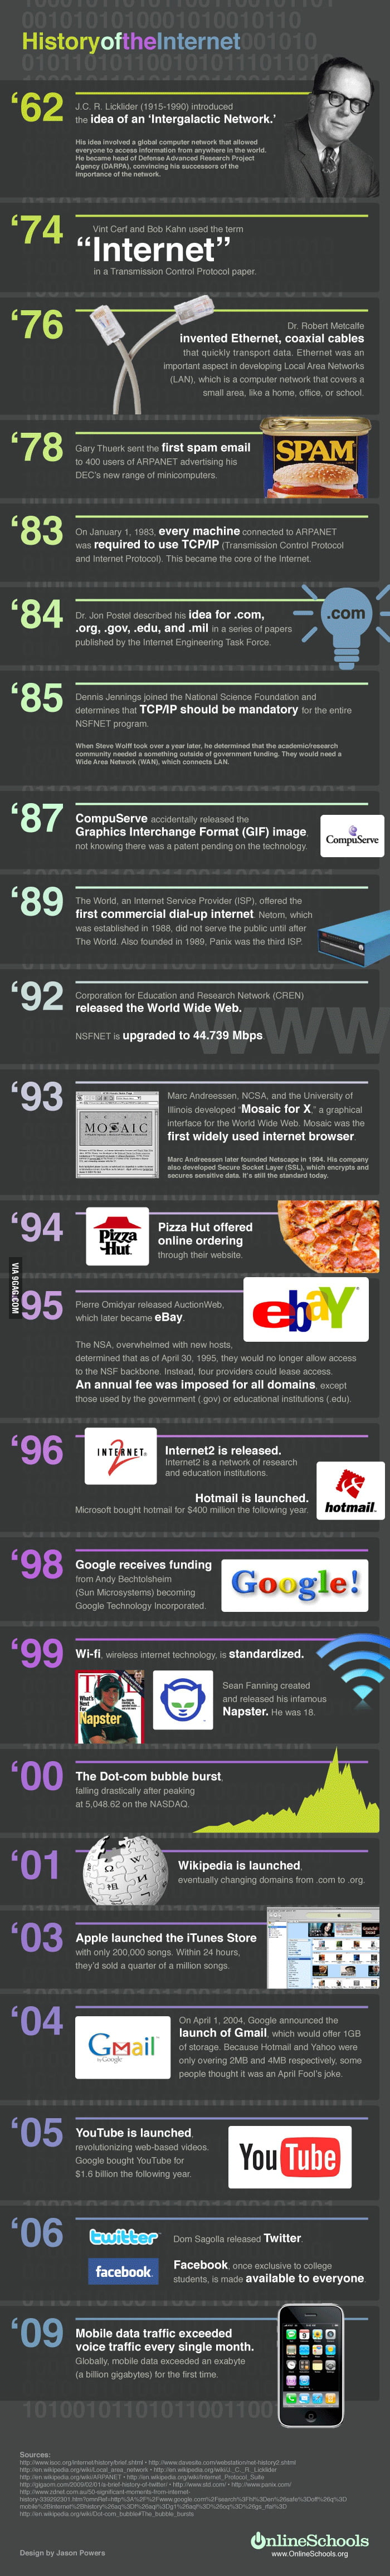 The History of the Internet, Visualised